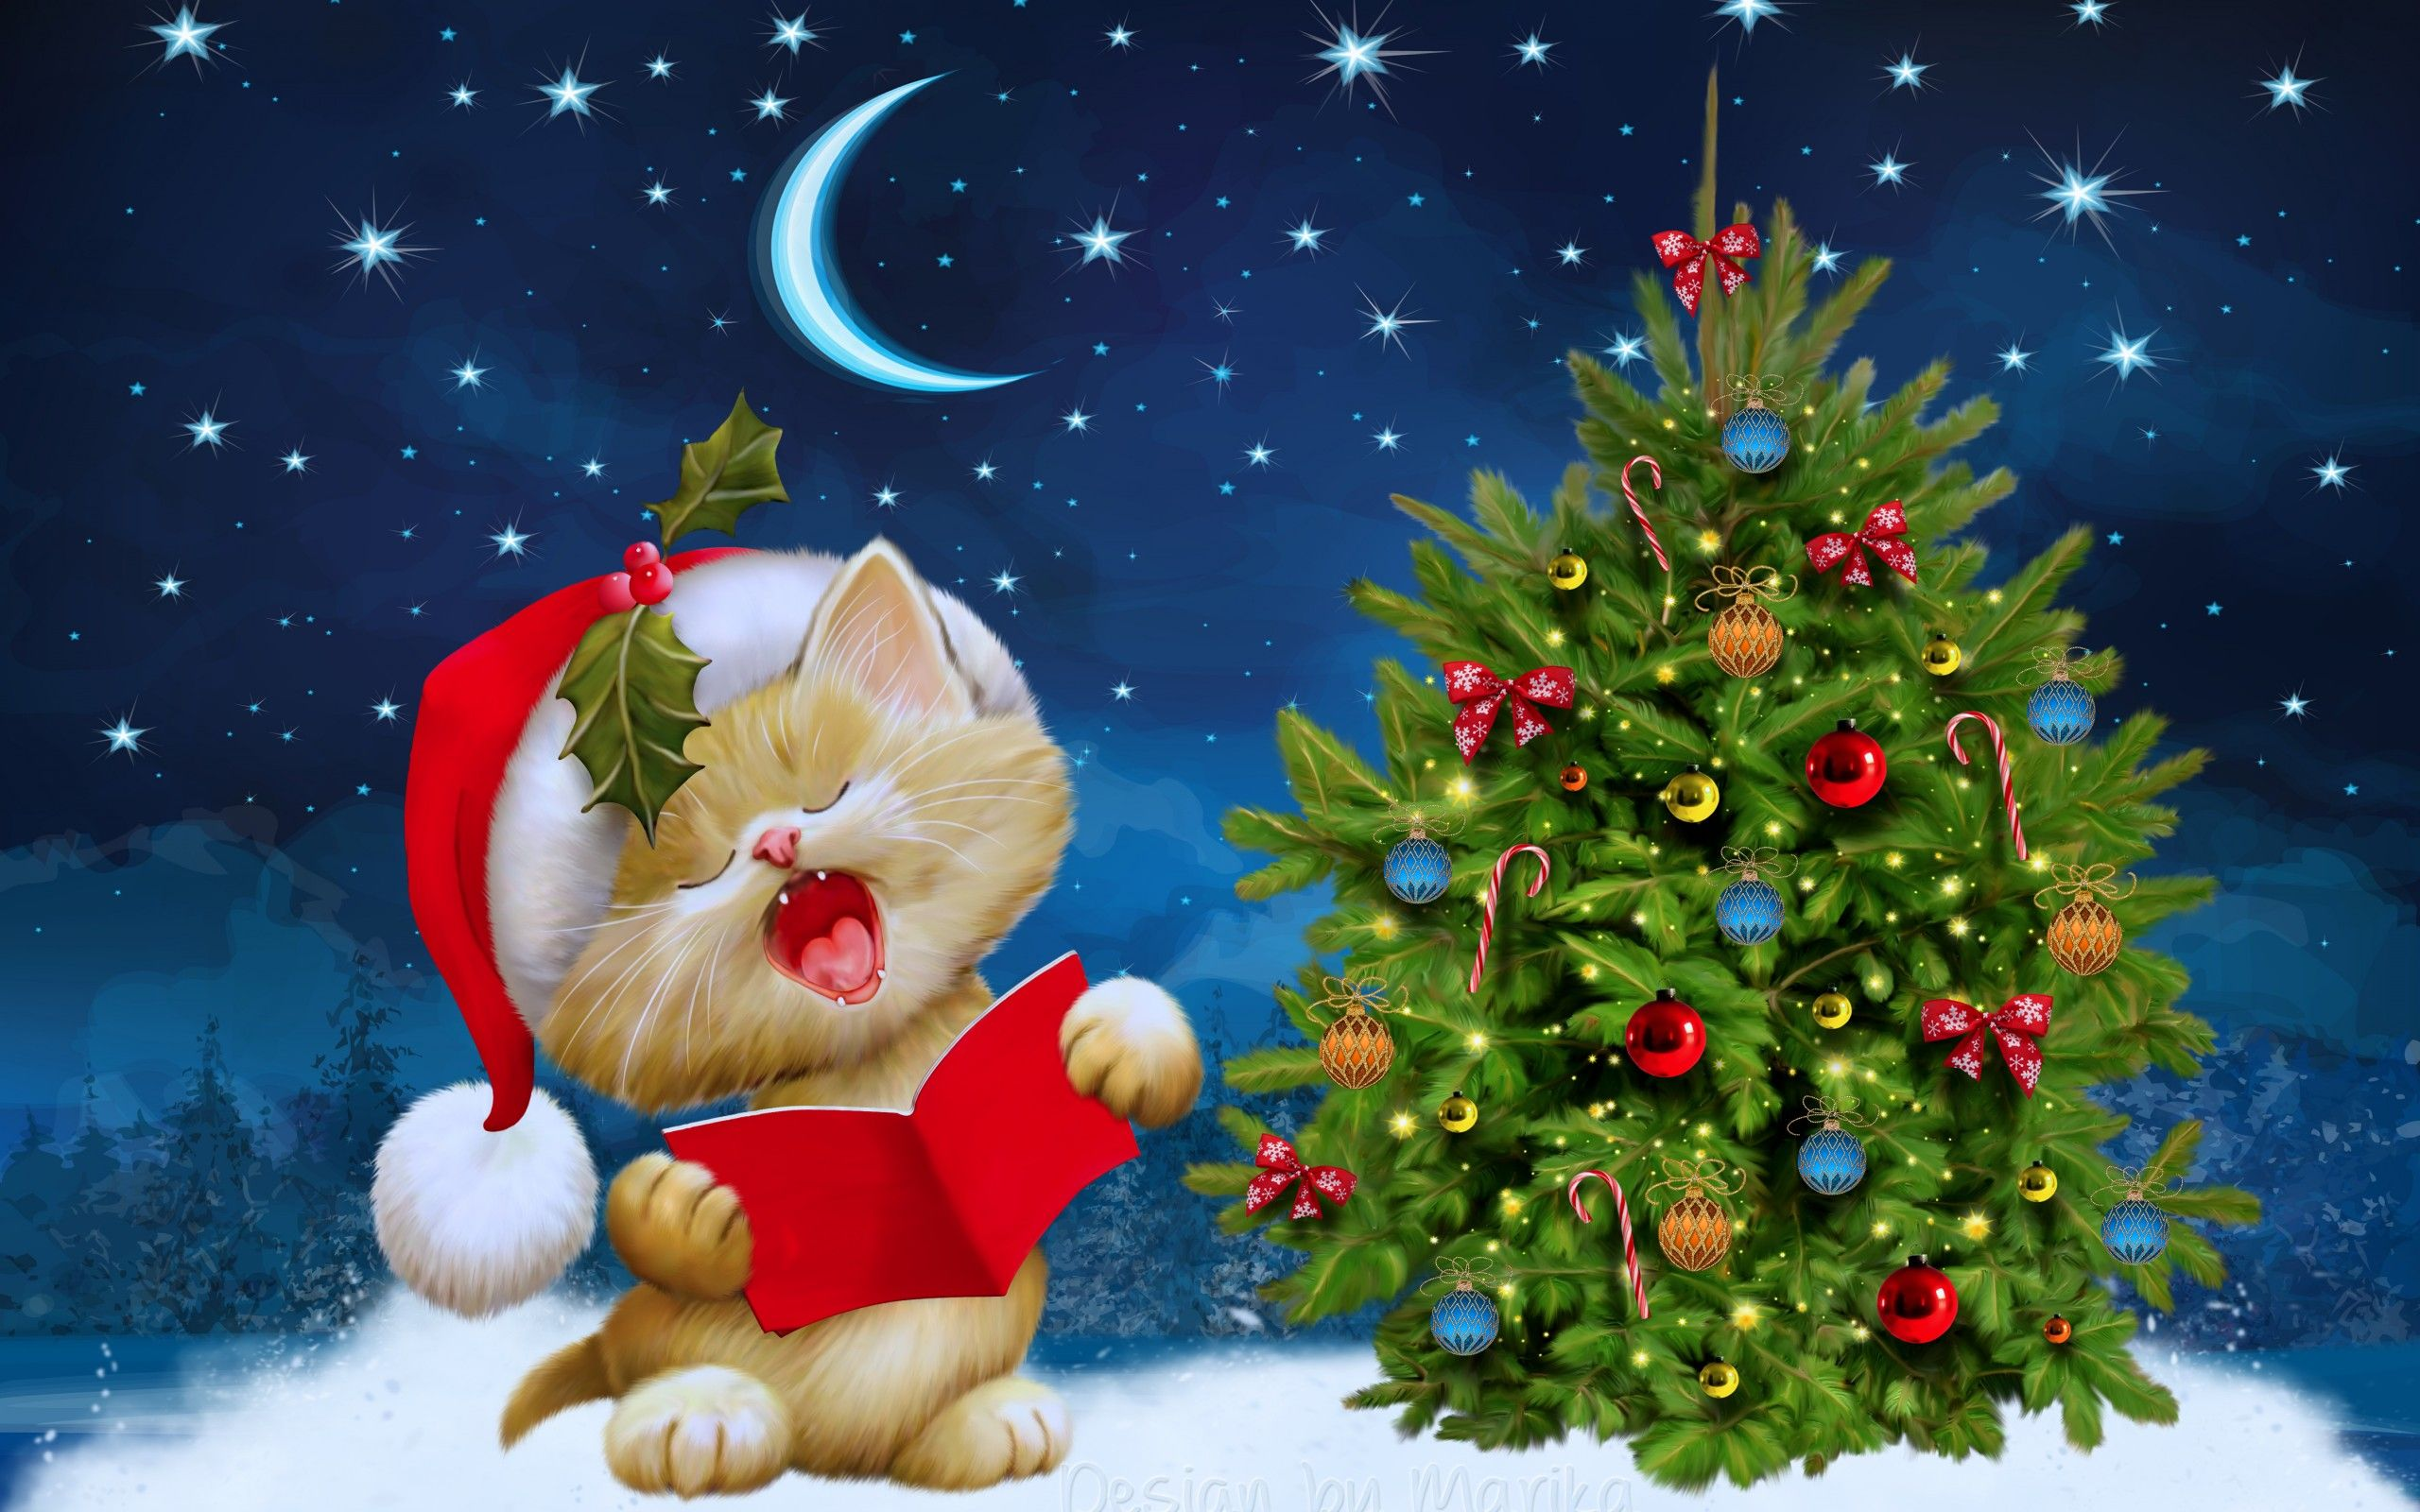 Merry Christmas Cute Cat And Tree HD Wallpaper For Day 2018 Cats Christmastree Merrychristmas Download